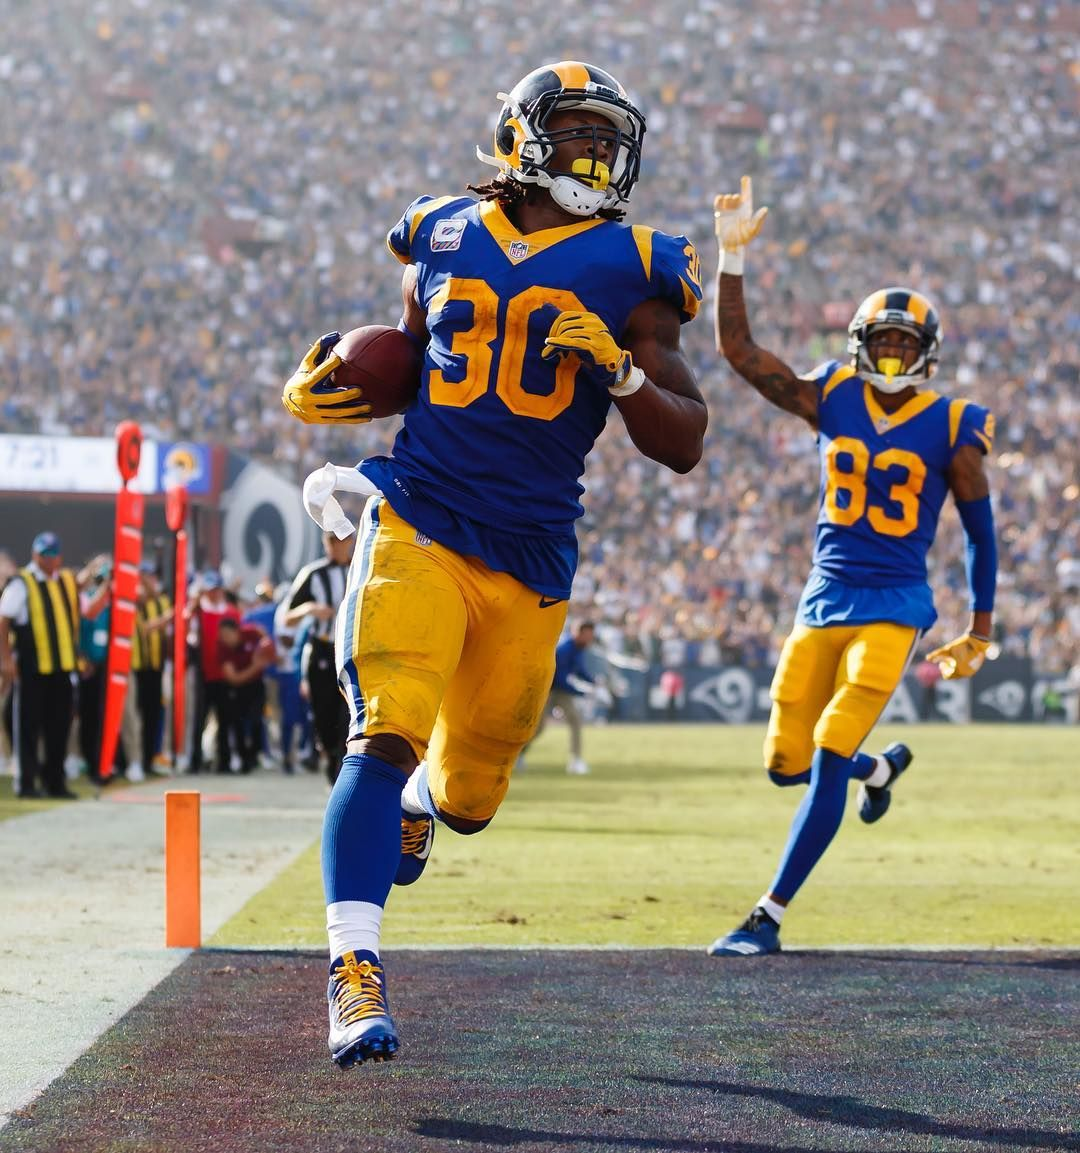 Gurley Gbvslar Nflfocus Rams Nfl Nfl Mobsquad American Football Jersey Rams Football Nfl Football Pictures